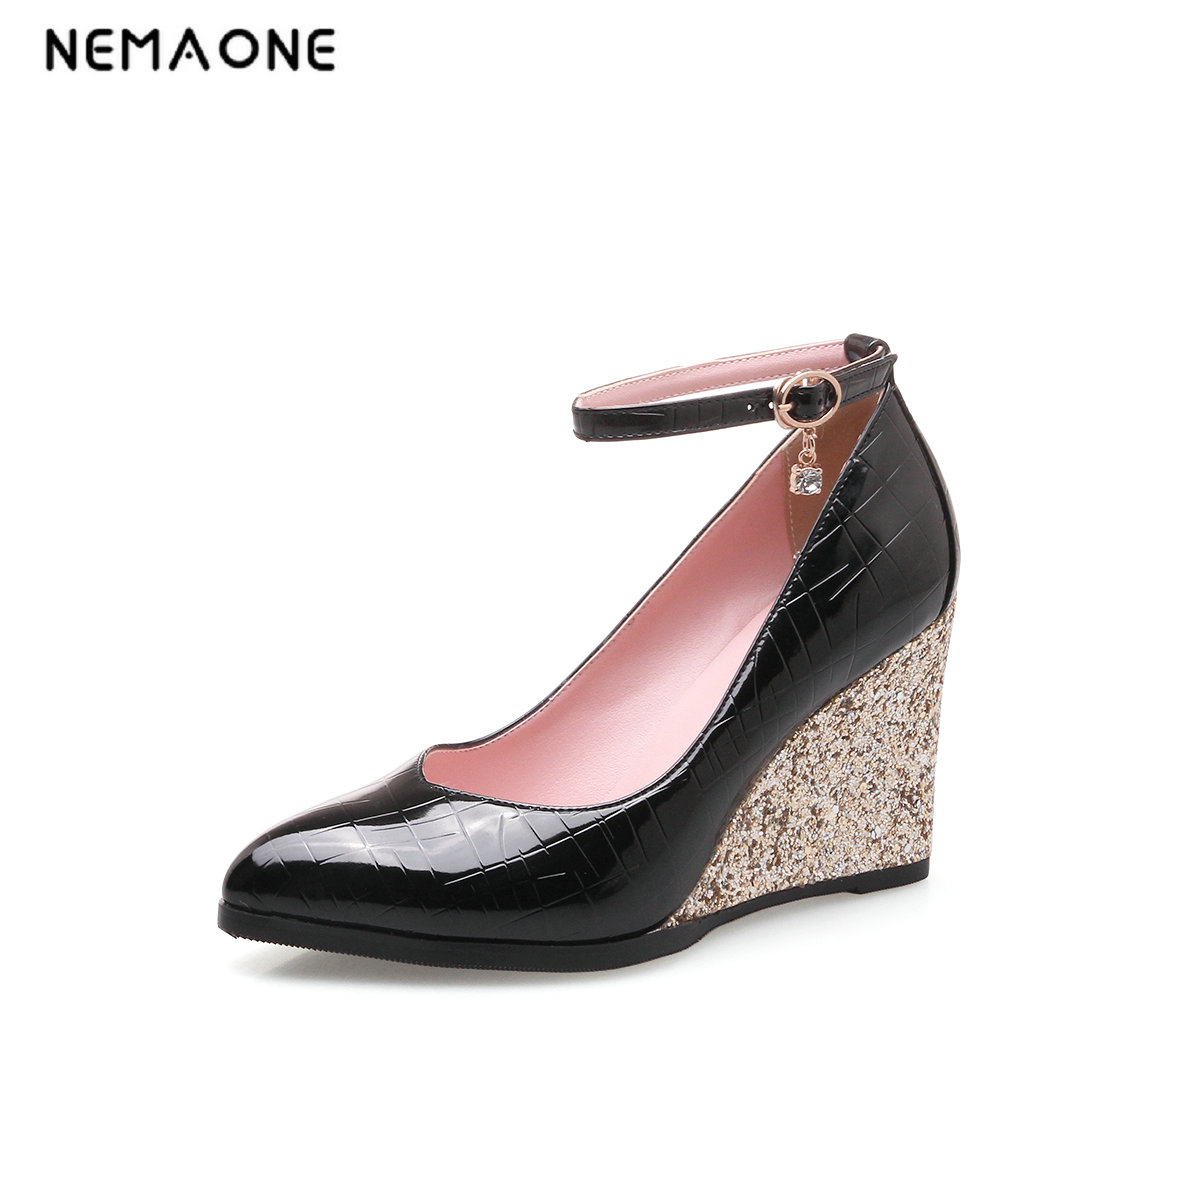 NEMAONE Women Pumps PU Leather Woman Shoes Ankle Strap Platform Wedge High Heel Pointed Toe Ladies Wedding Pumps Size 34-43<br>